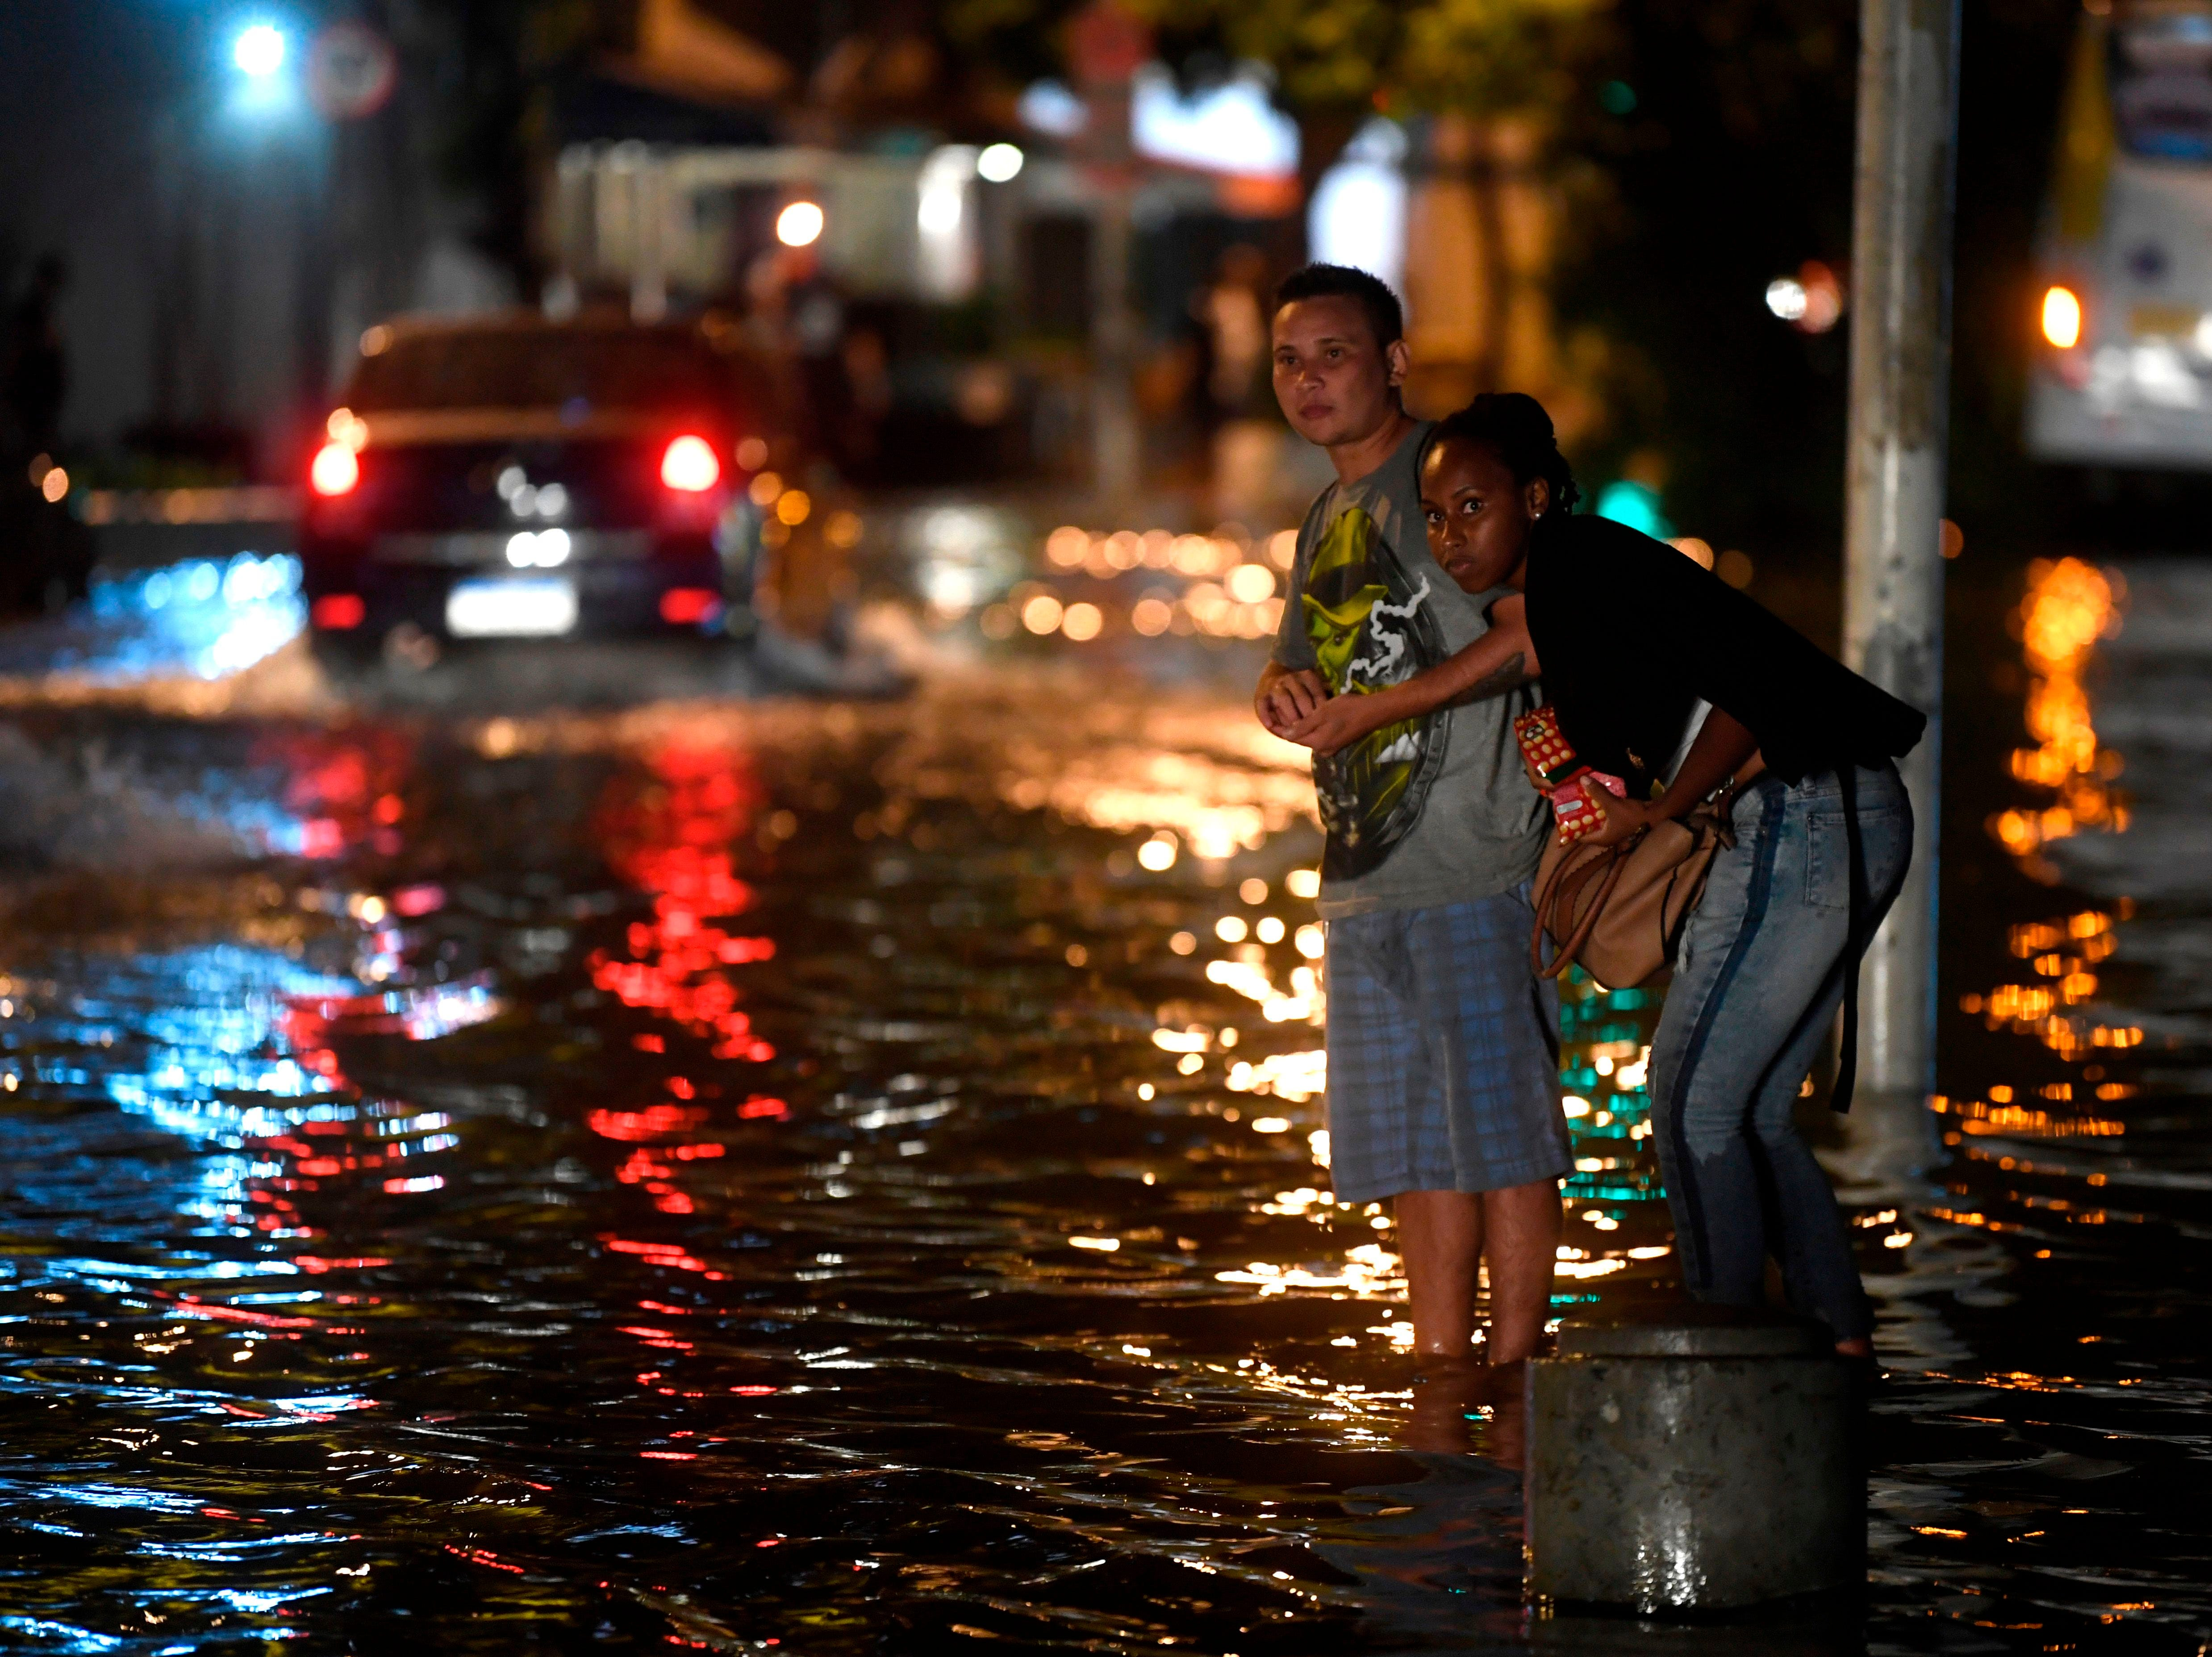 People watch for a bus at the Voluntarios da Patria street station in the Botafogo neighborhood after a strong rain flooded multiple areas of Rio de Janeiro, Brazil on Feb. 7, 2019.